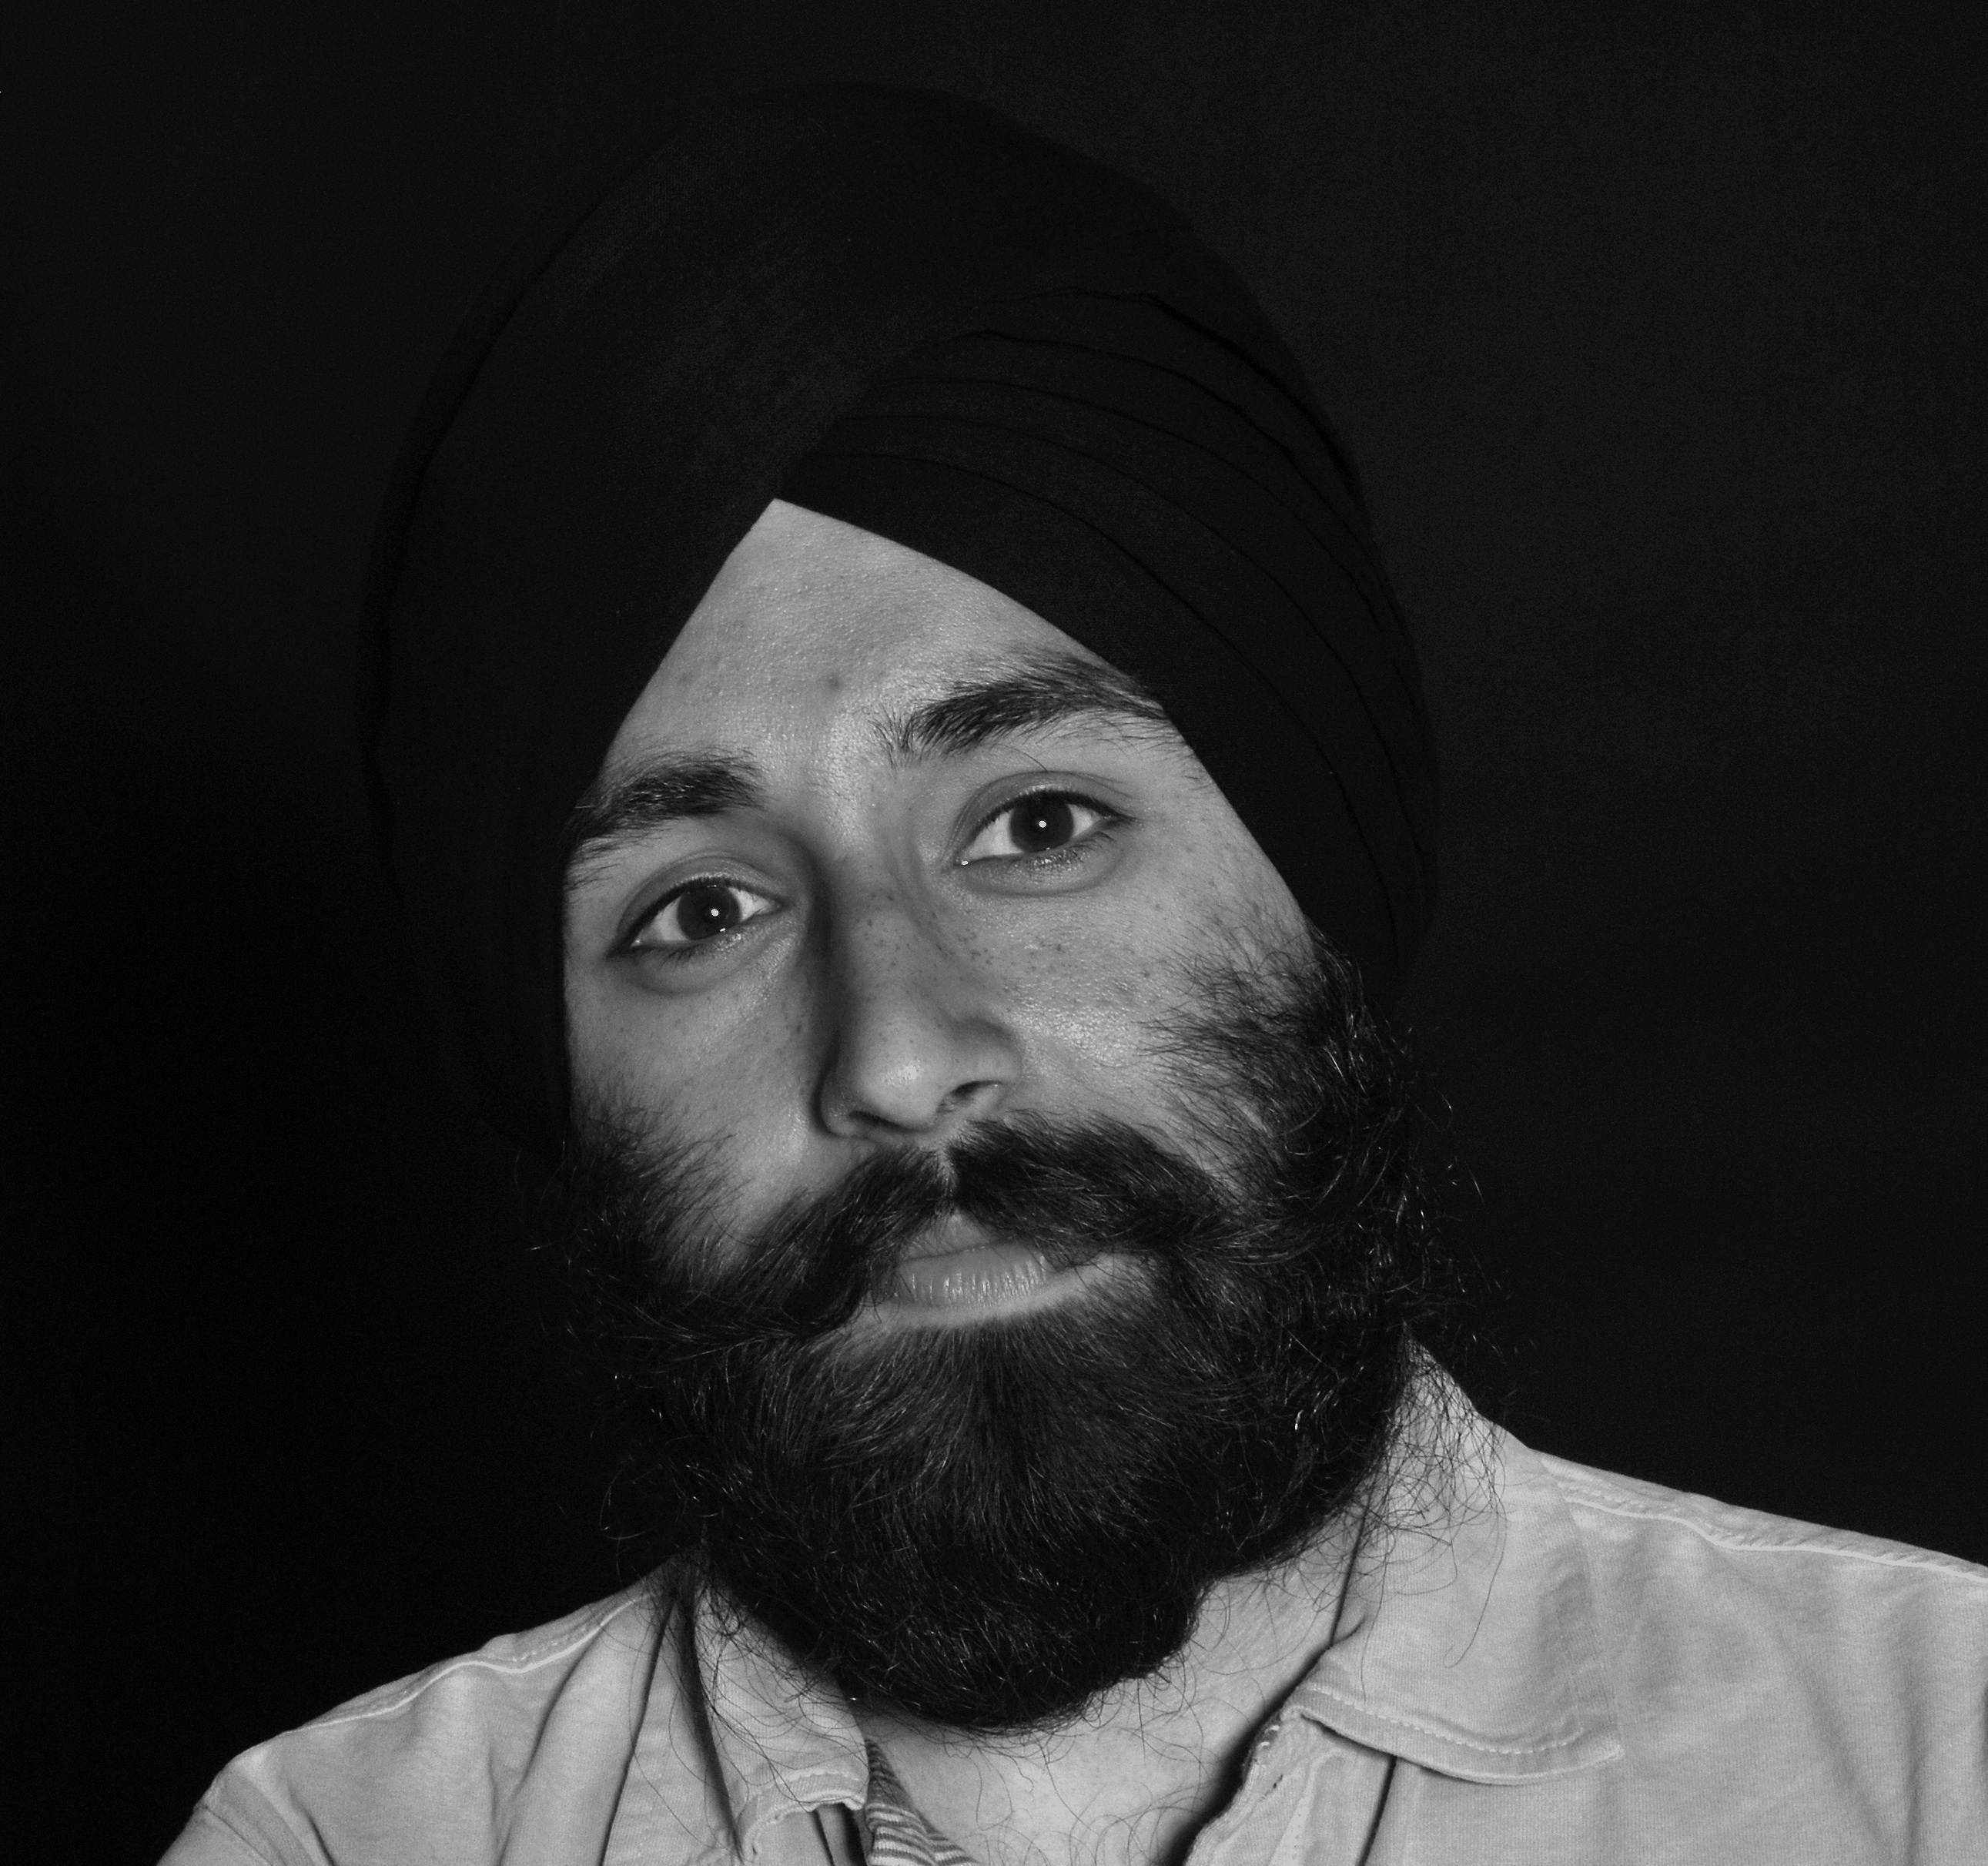 Tajinder Hayer